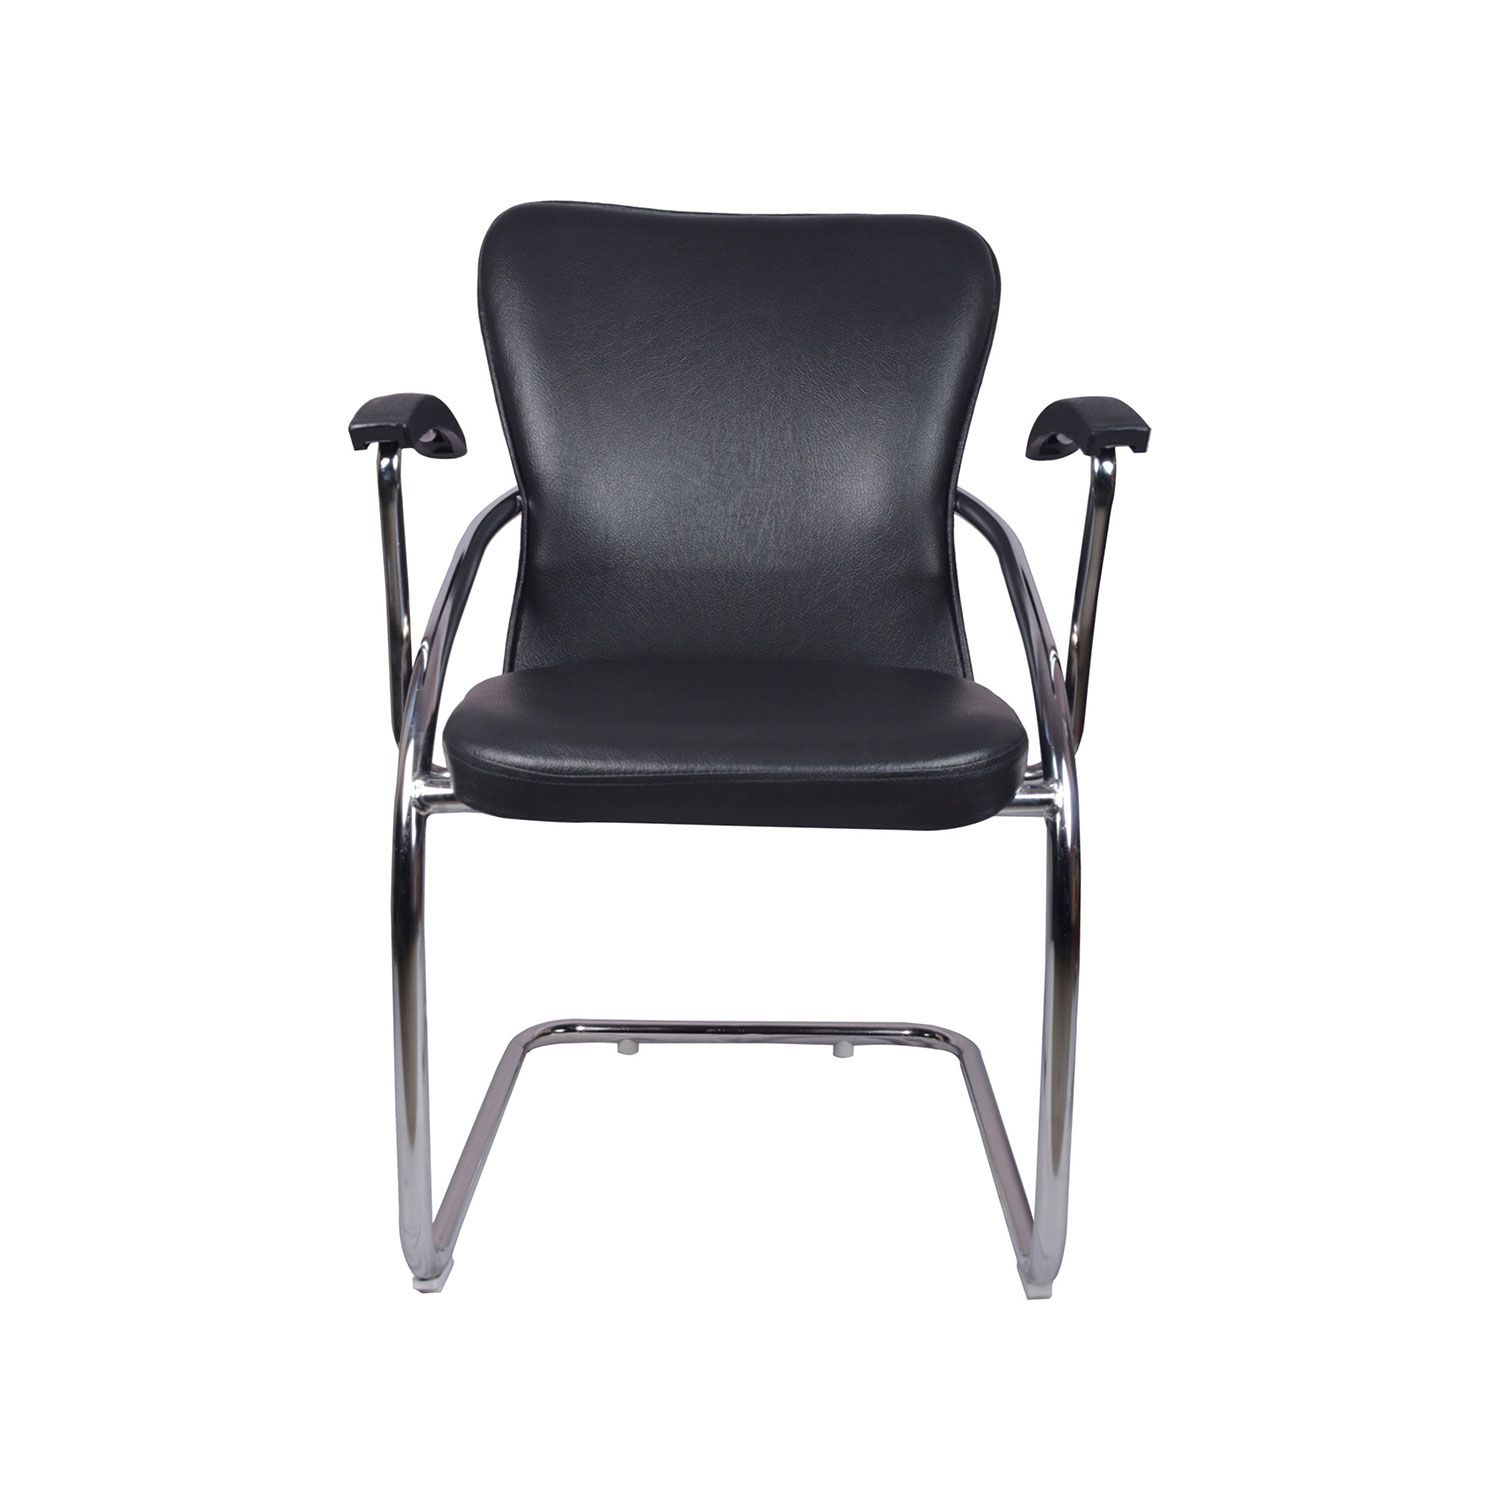 """""""THE DOBLAR MID BACK GUEST CHAIR BLACK""""  Office Furniture Online, Modular Office Furniture Chairs Manufacturers and Supplier Delhi 